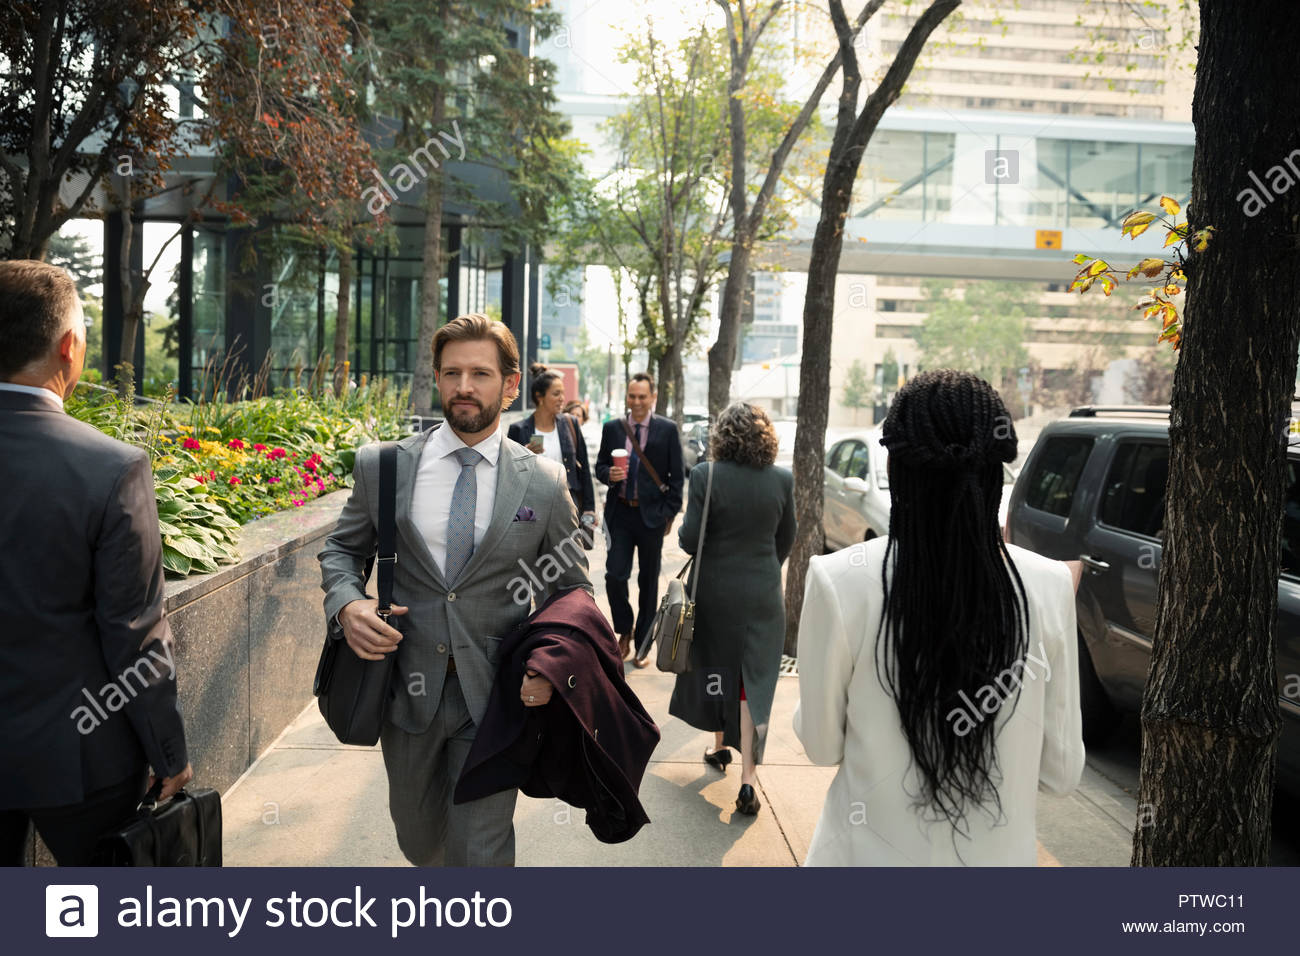 Business people walking on city sidewalk - Stock Image